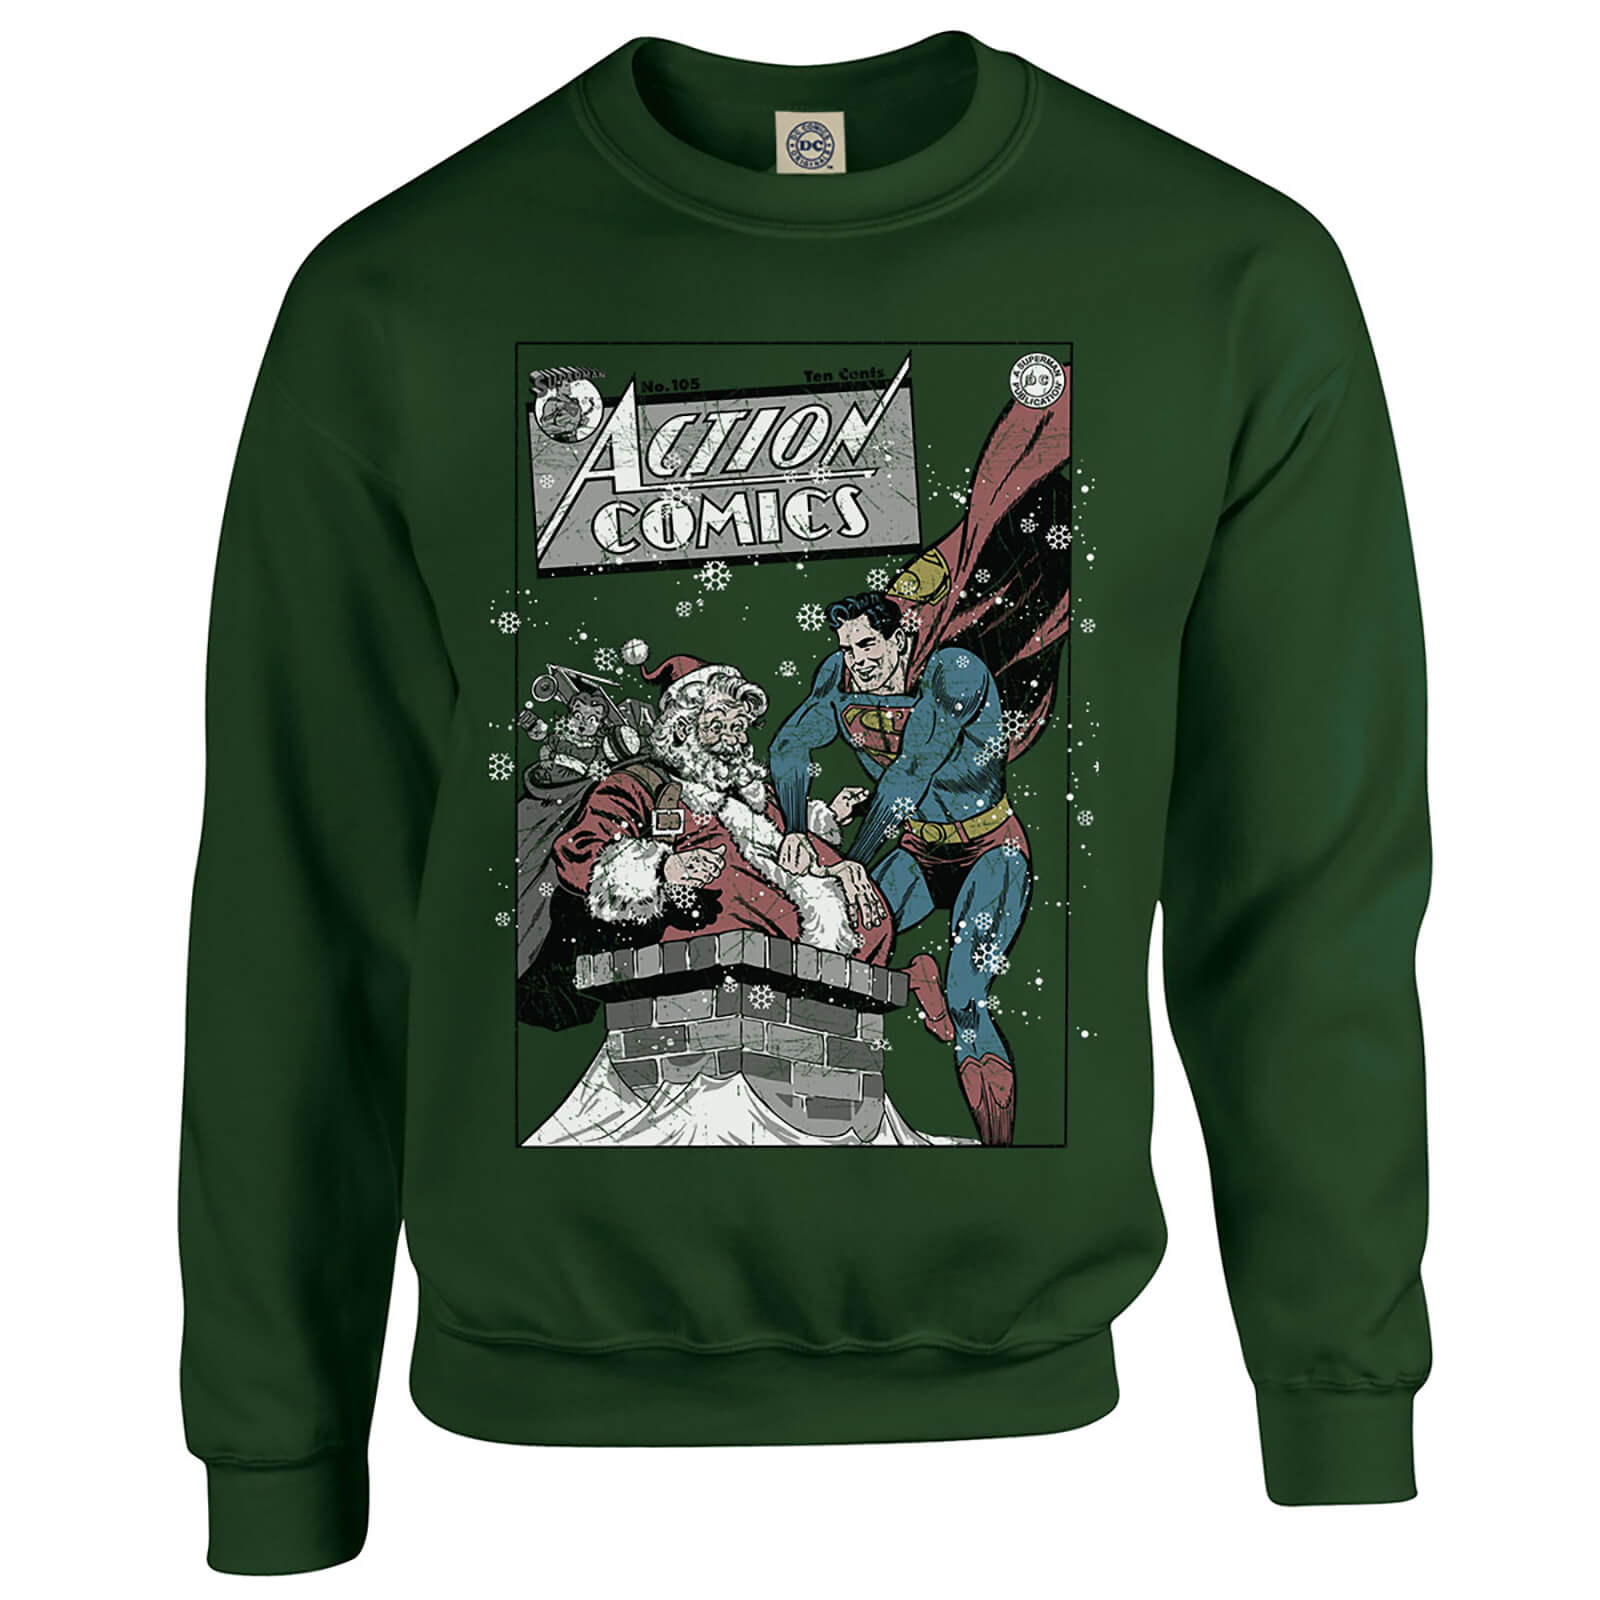 DC Comics Originals Superman Action Comics Green Christmas Sweatshirt